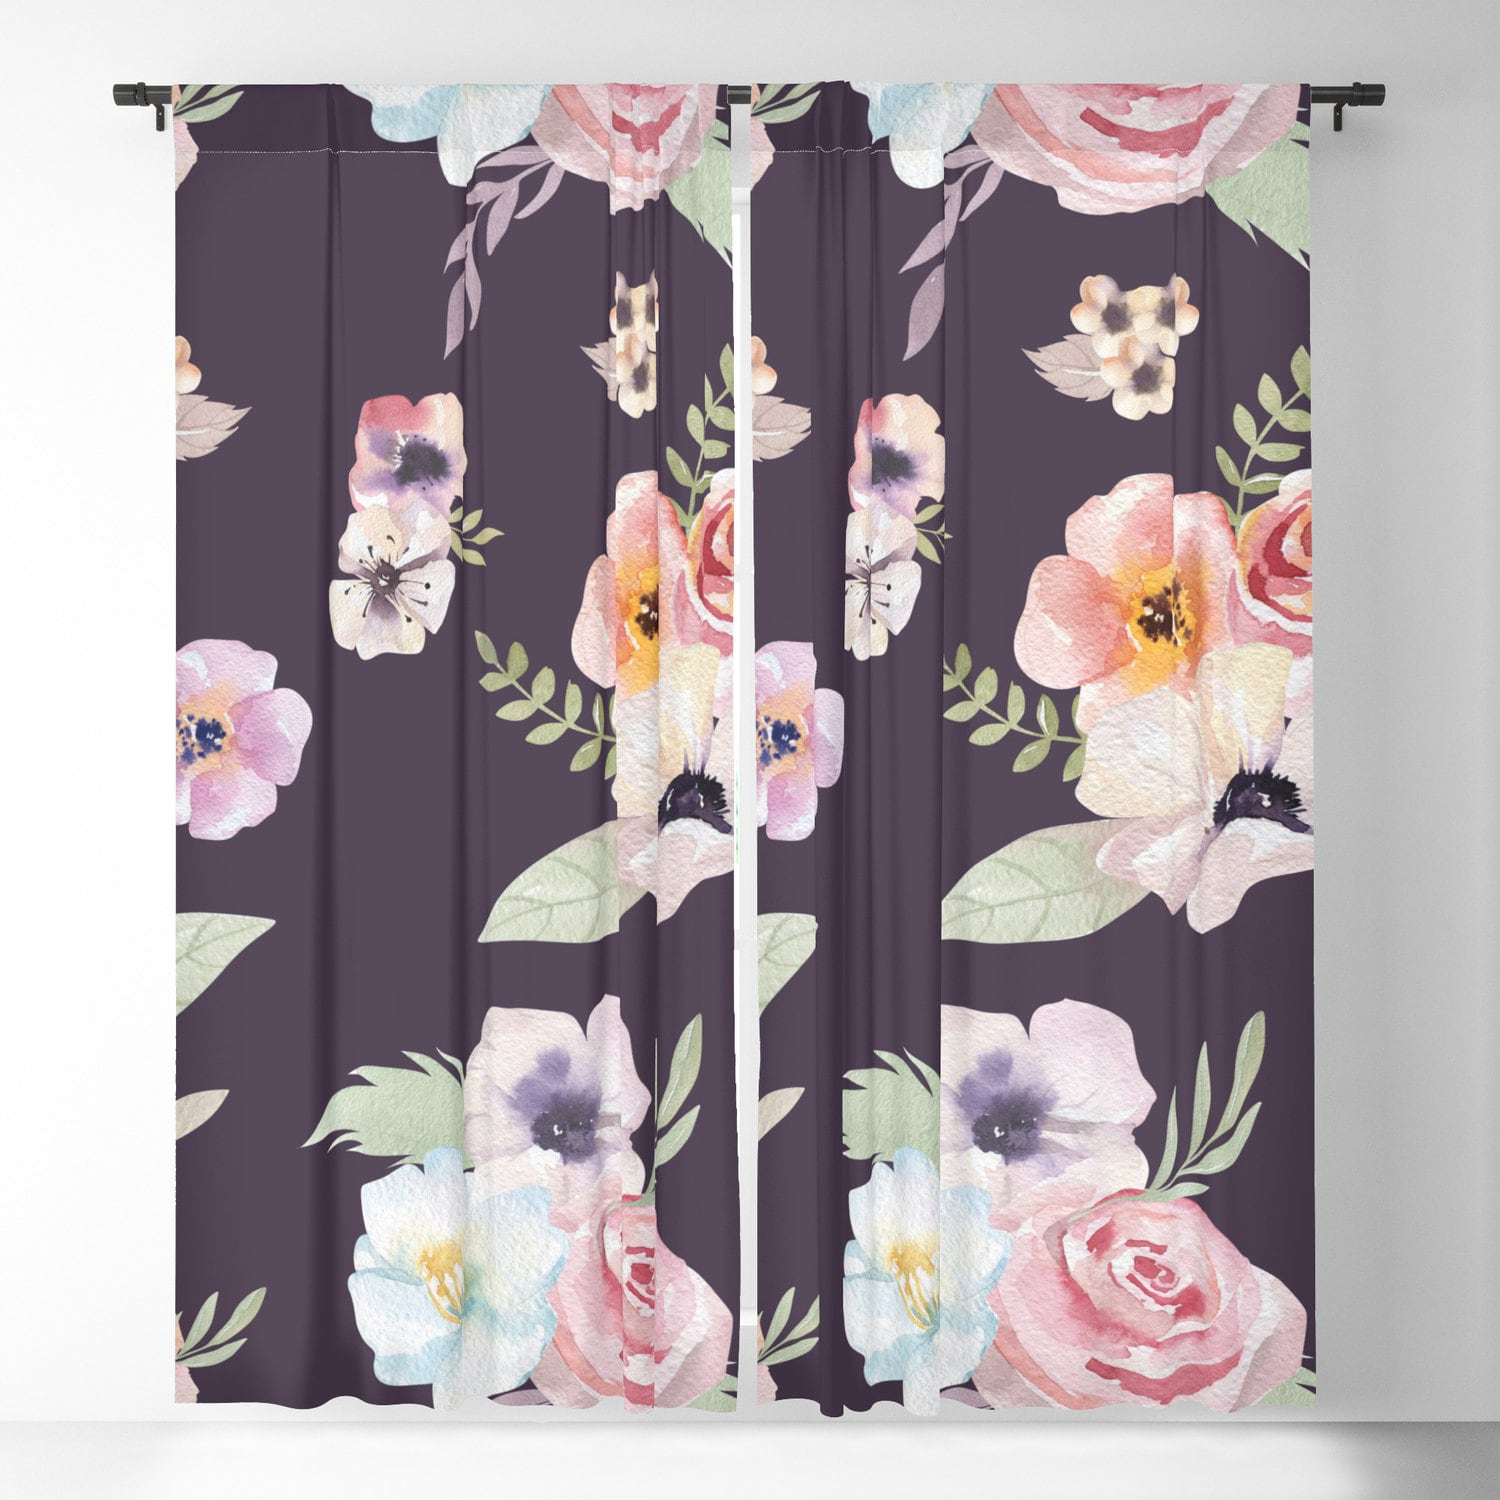 Window Curtains Watercolor Floral I Eggplant Pink 50 X 84 Or 96 Length Blackout Or Sheer Rod Pocket Bedroom Nursery Playroom